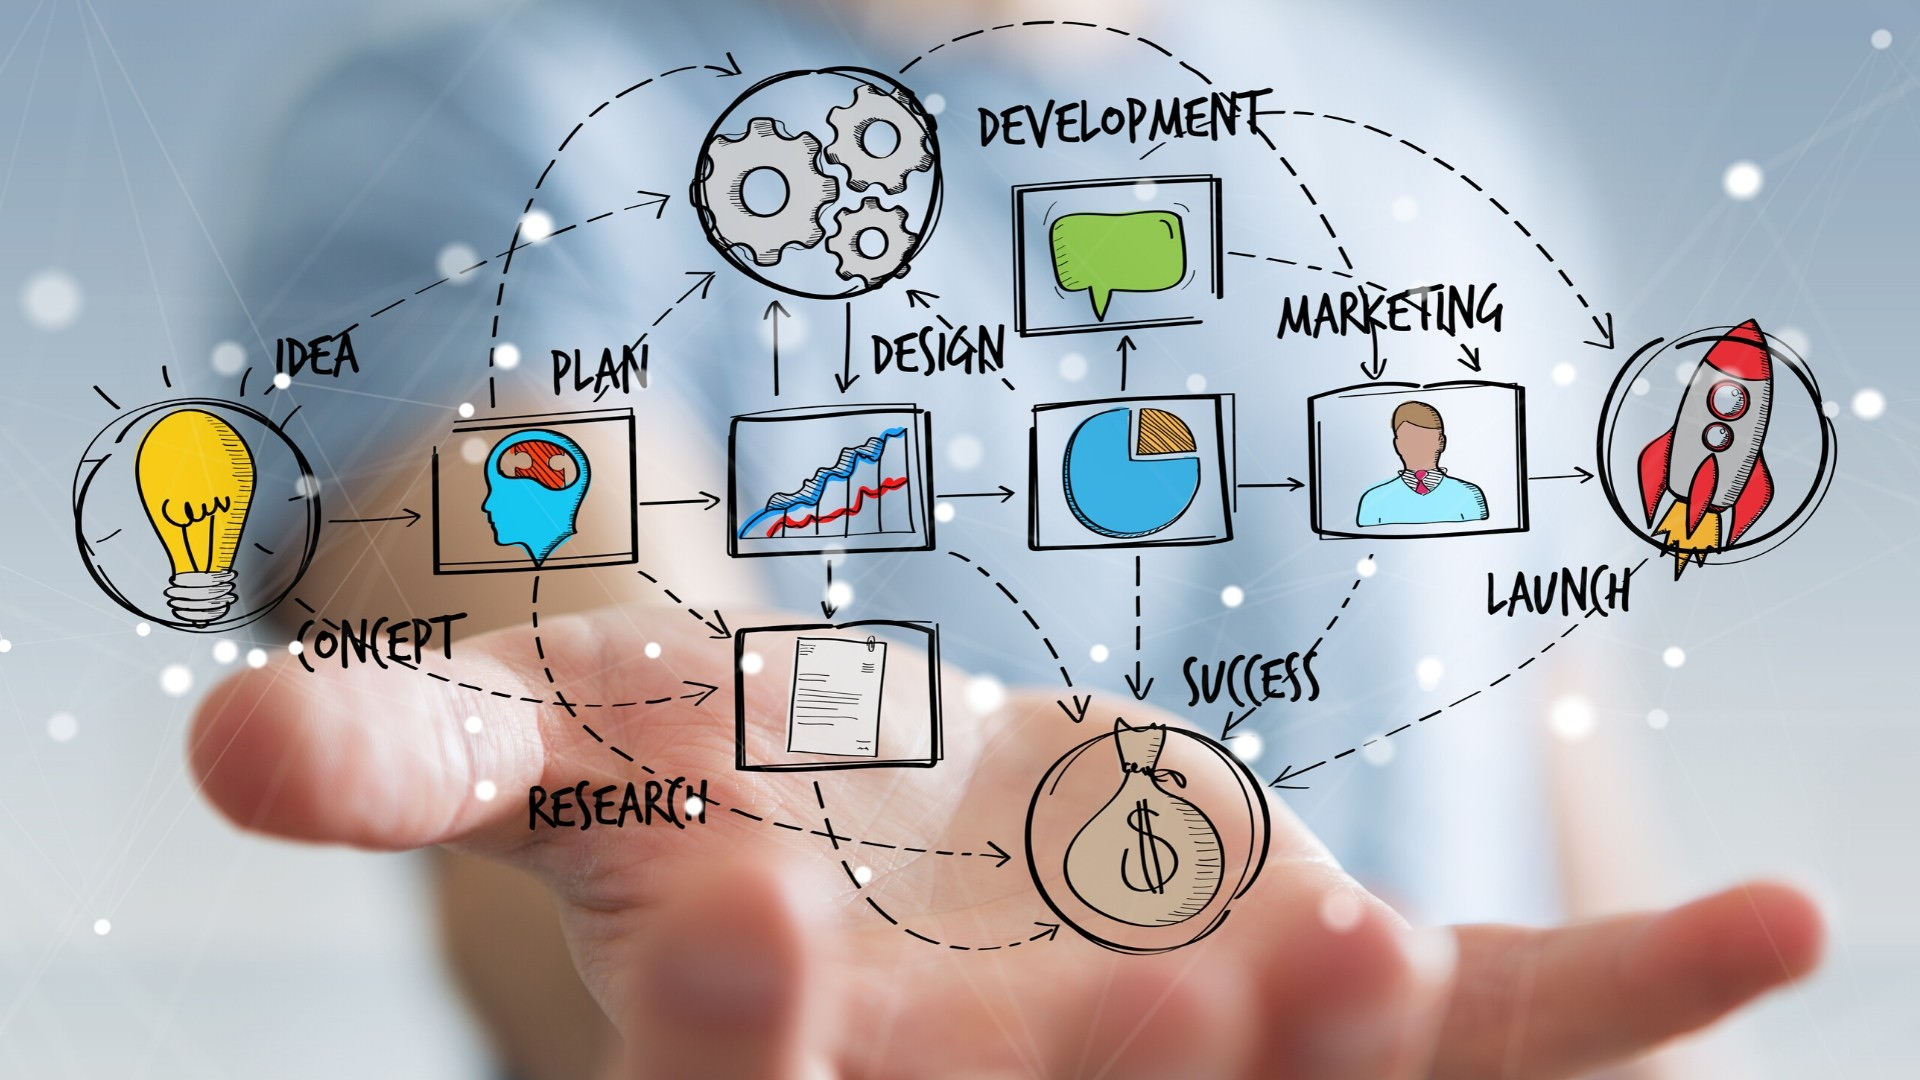 category design market building growth stage marketing consulting mark donnigan